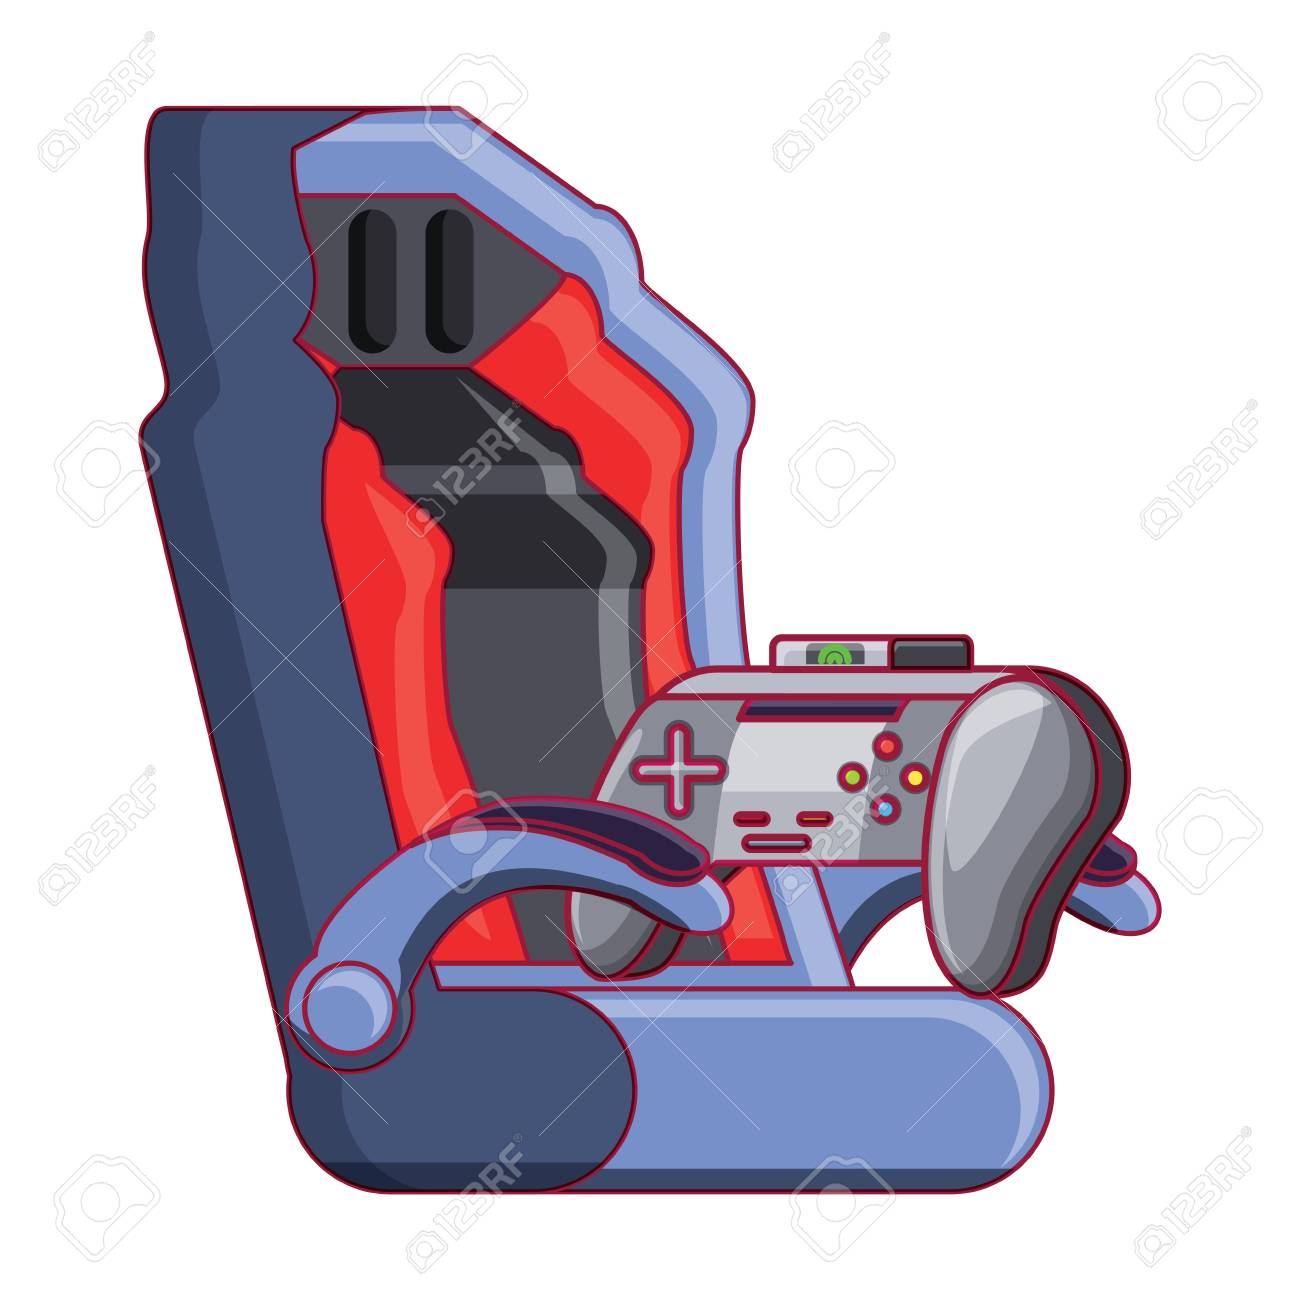 Remarkable Gaming Chair And Game Controller Icon Over White Background Forskolin Free Trial Chair Design Images Forskolin Free Trialorg